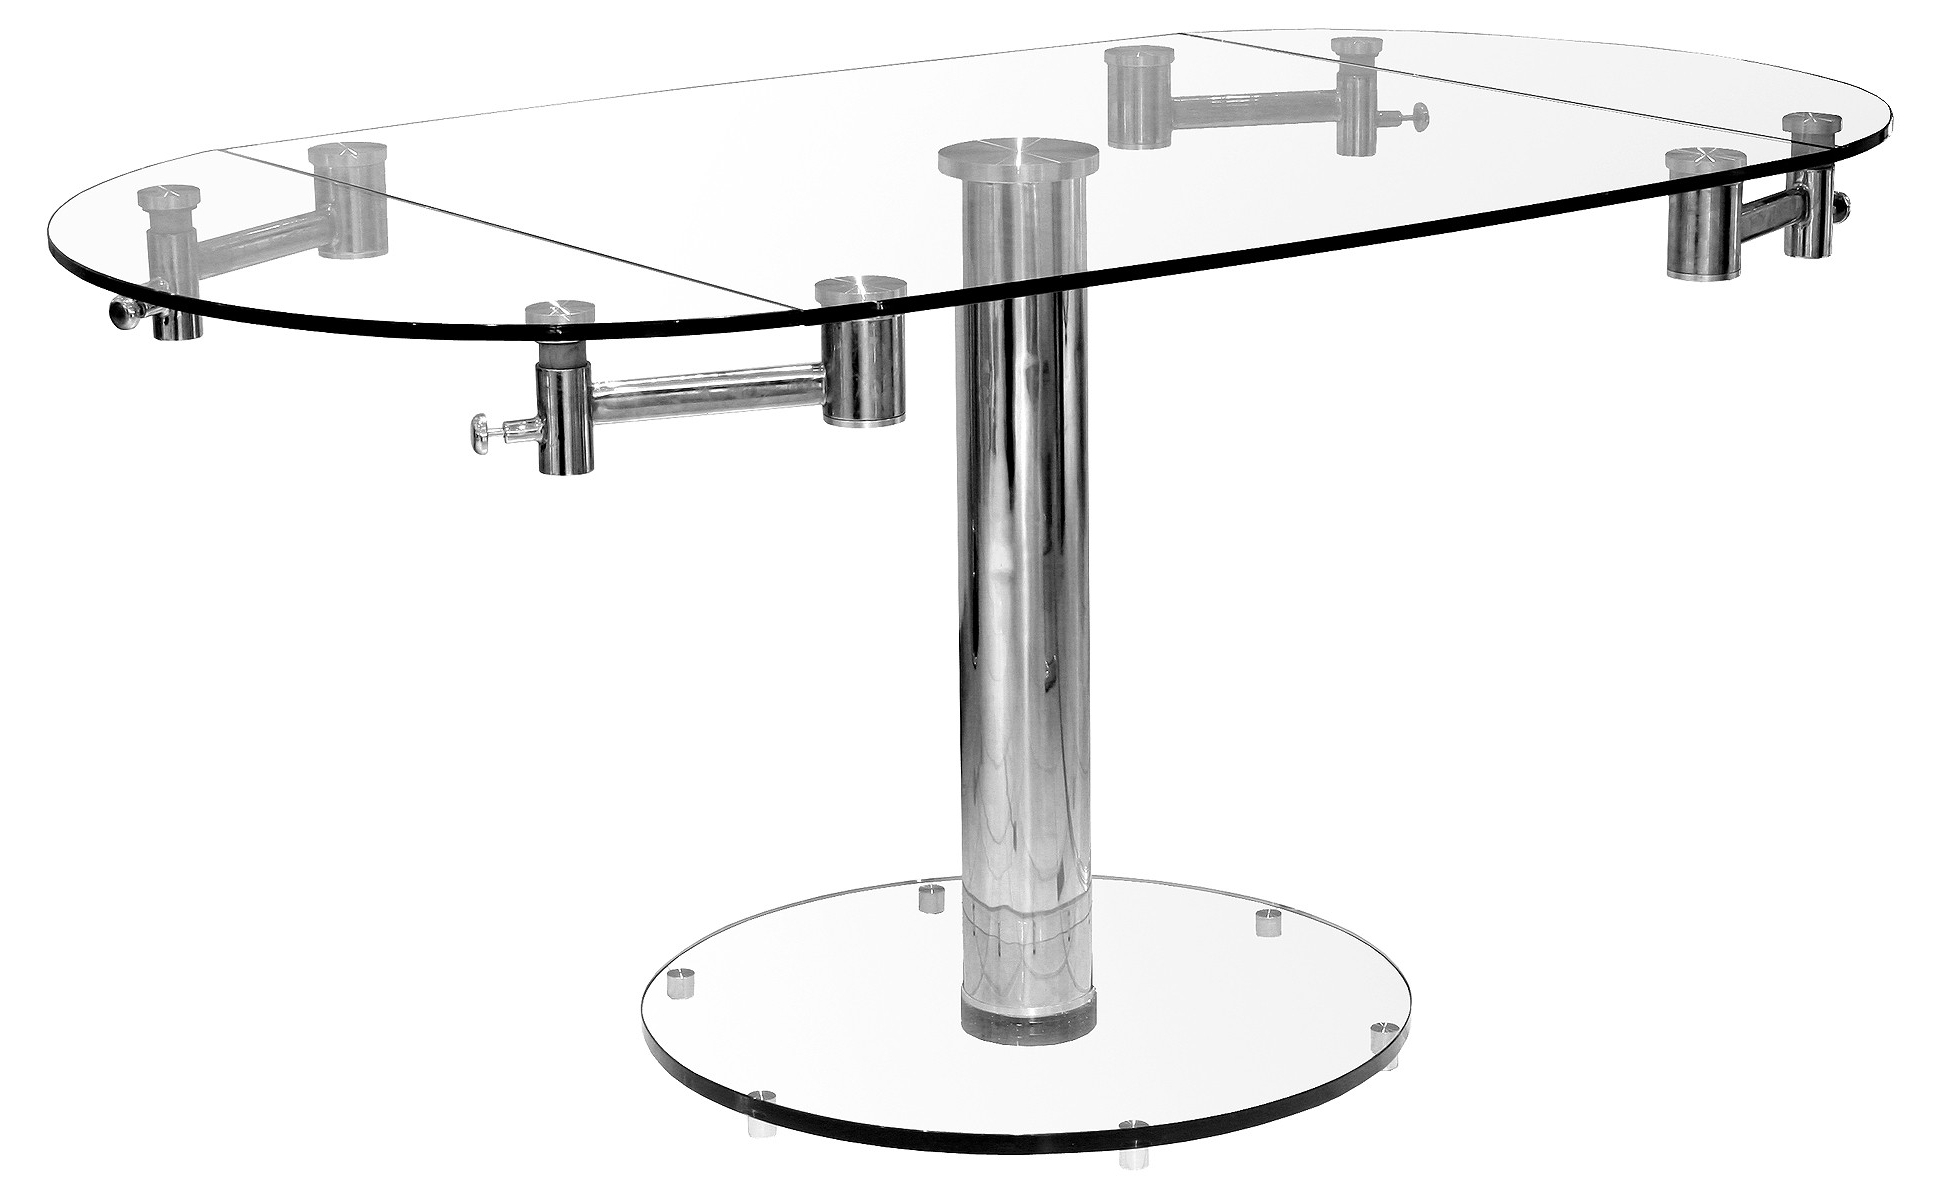 Trendy Oval Glass Extending Dining Table – Fw698 – Be Fabulous! Inside White Square Extending Dining Tables (View 22 of 25)